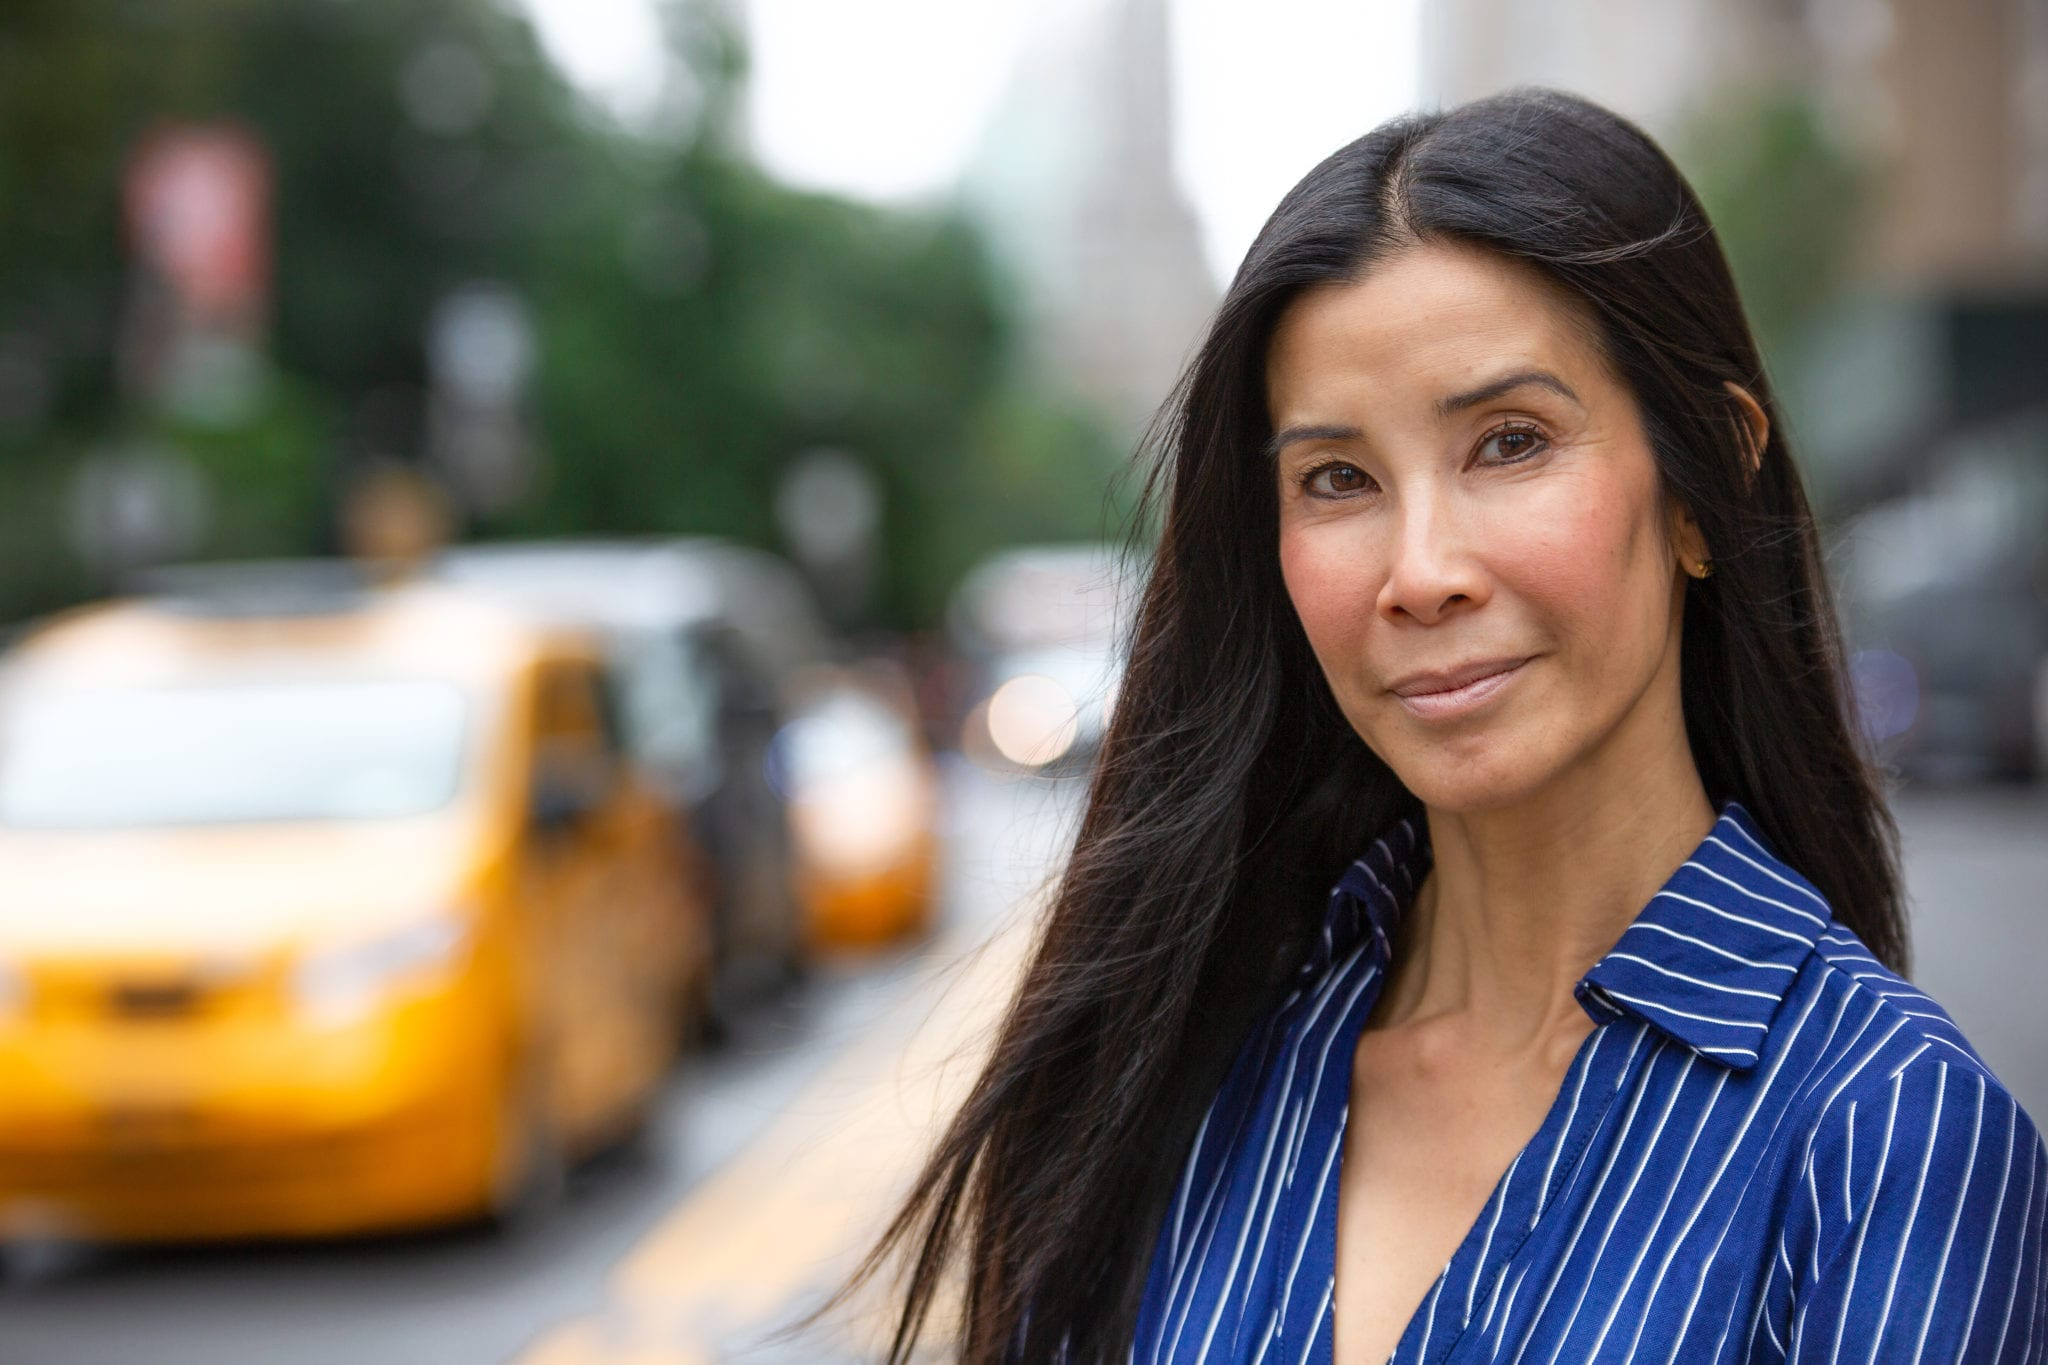 8 Things to Know about our Spring Cover Star, Lisa Ling